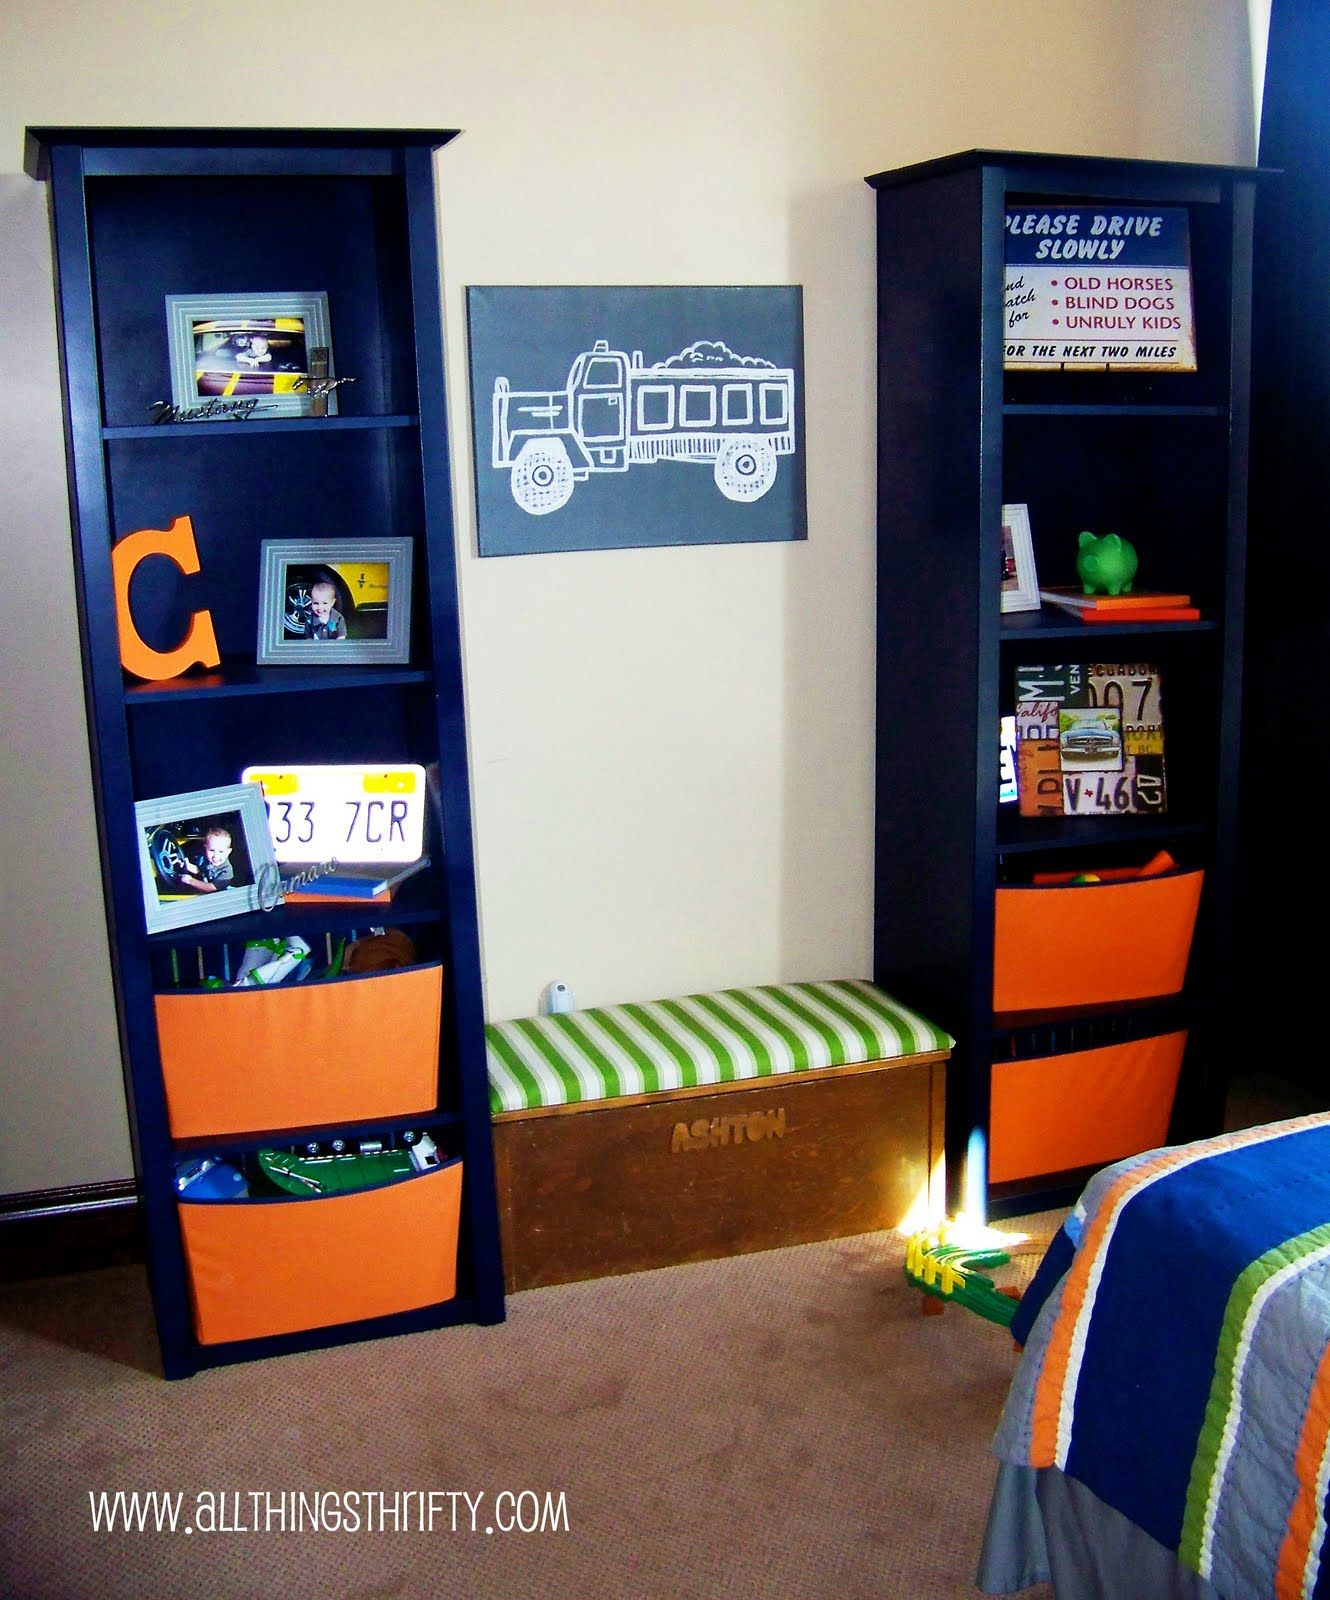 Bedroom wall designs for teenagers boys - Lego Teenage Boy Bedroom Decorating Ideas Little Boy S Room Bedroom Decor